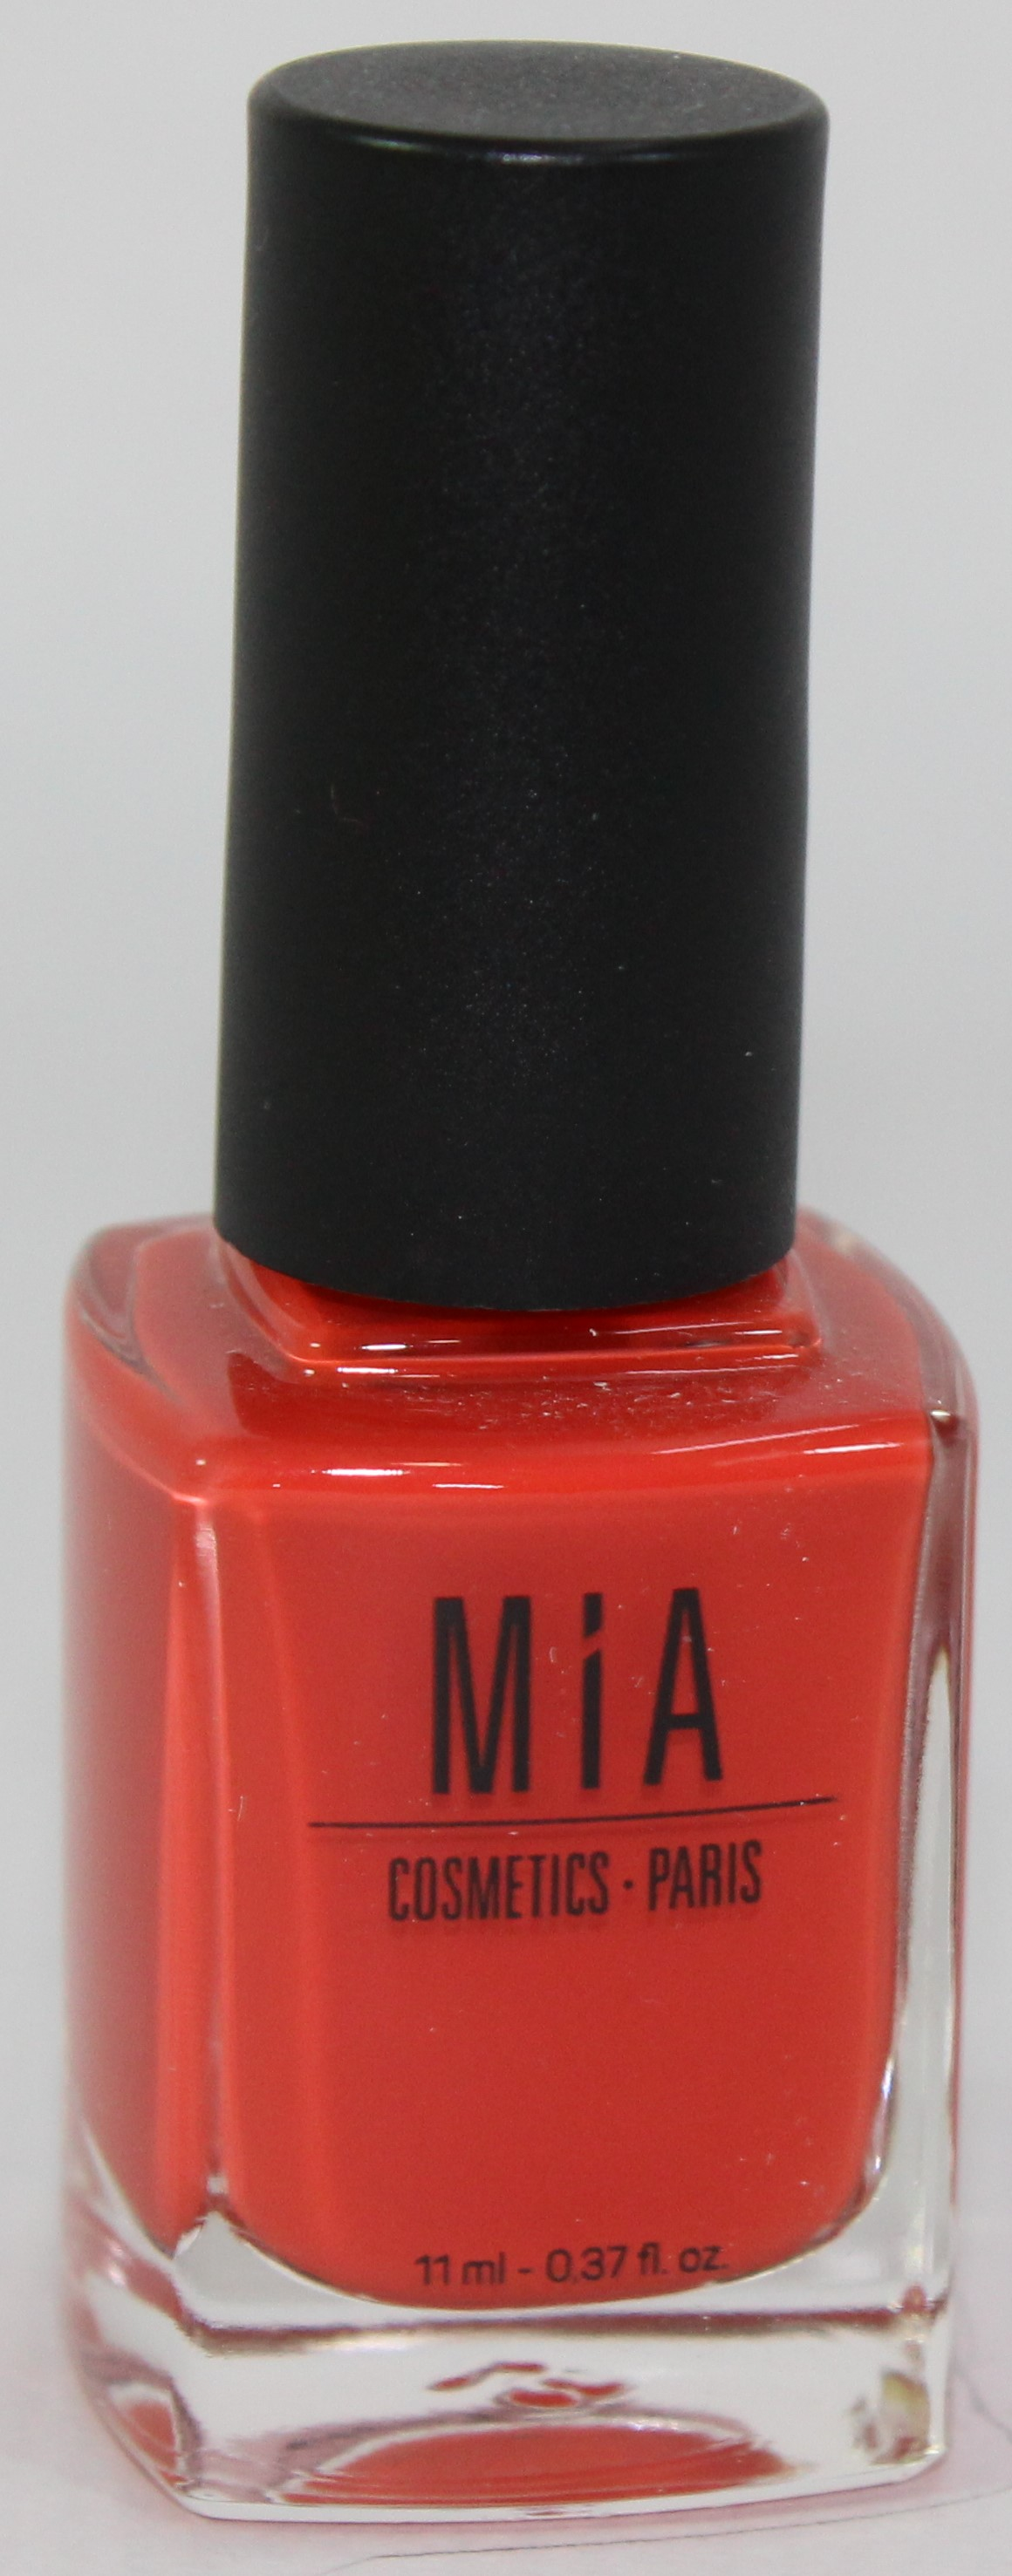 MIA PINTAUÑAS ORANGE CLAY 5-FREE 11ML